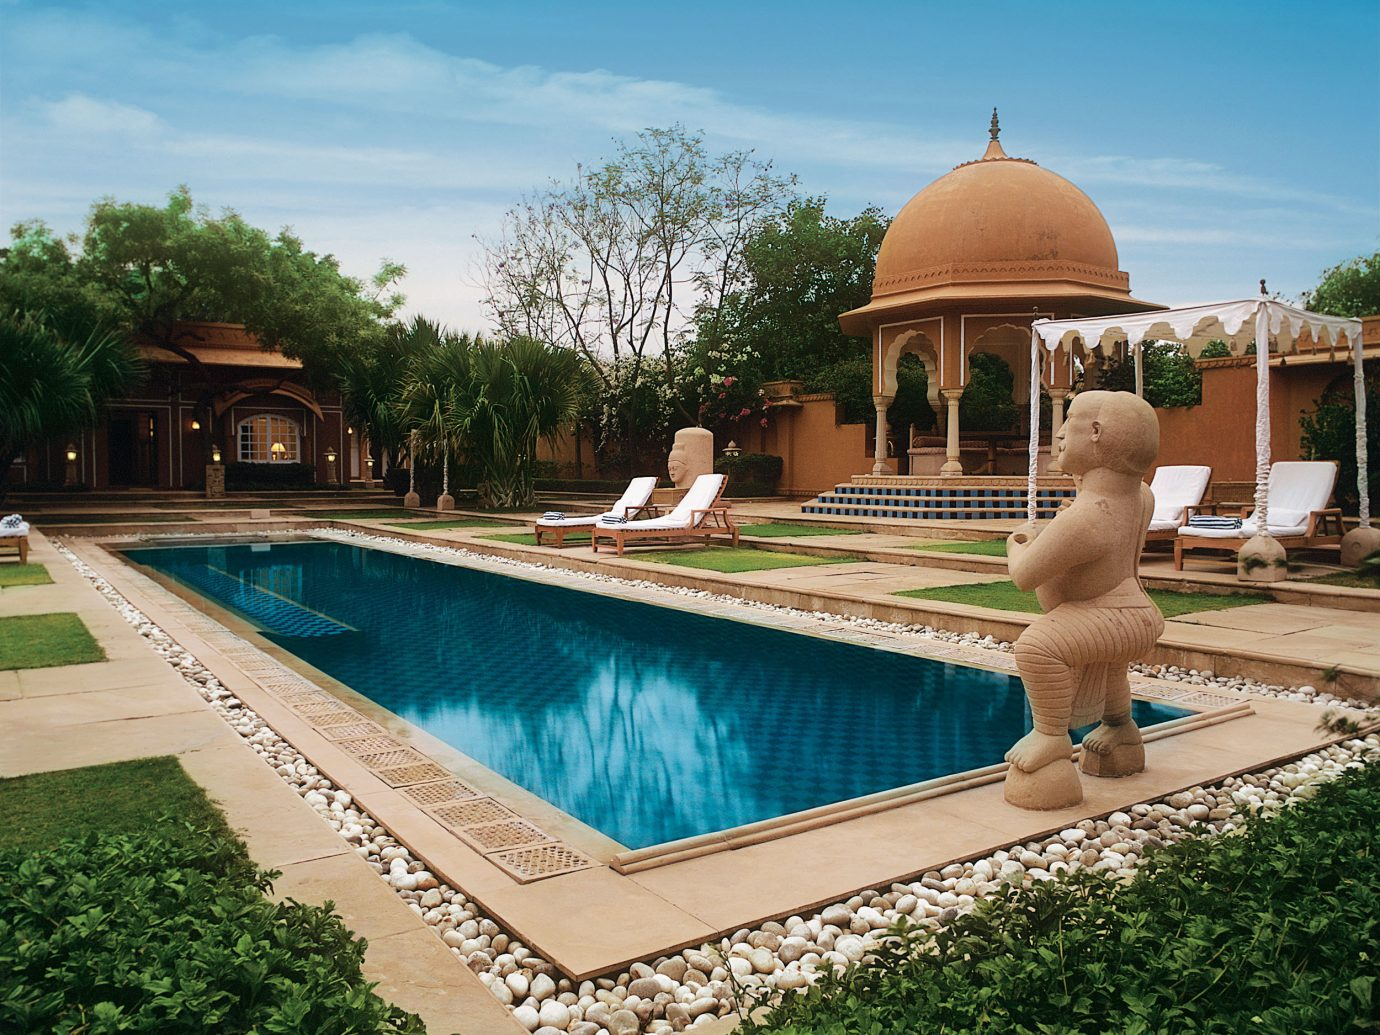 Hotels Luxury Travel Trip Ideas sky outdoor tree building swimming pool property leisure water estate Villa real estate Resort reflection resort town hacienda recreation tourism thermae amenity landscape vacation